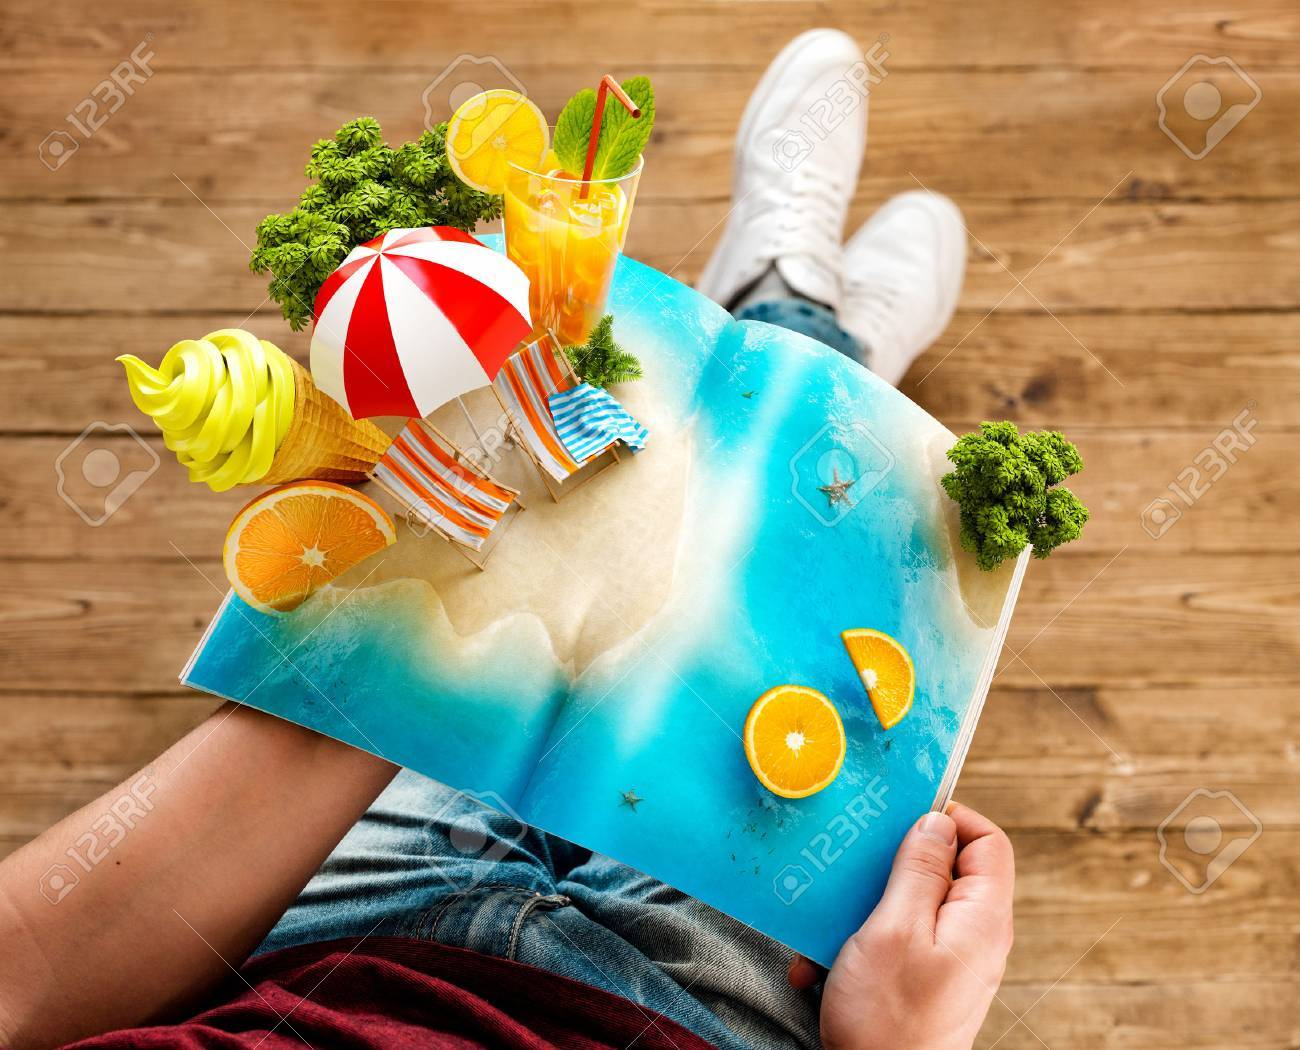 Tropical island with palms, ice cream and fresh juice on a page of opened magazine in hands. Unusual travel 3d illustration. Summer travel and vacation concept - 76034739